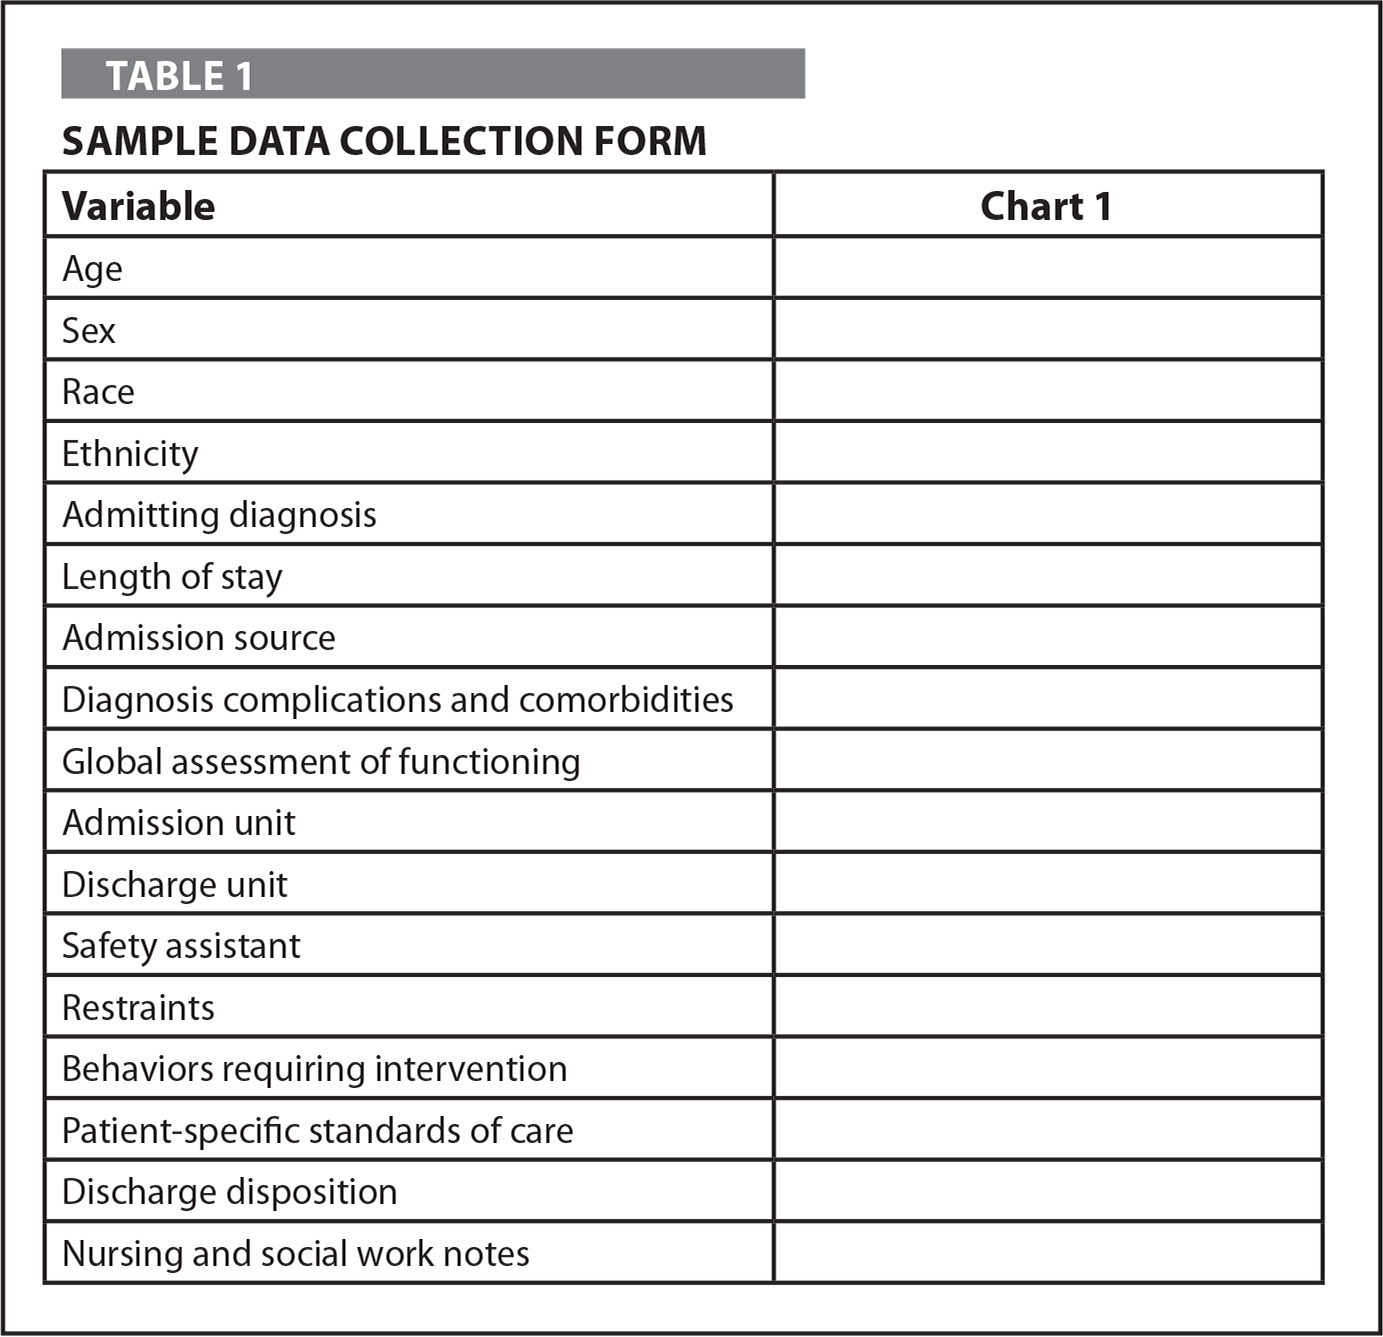 Sample Data Collection Form